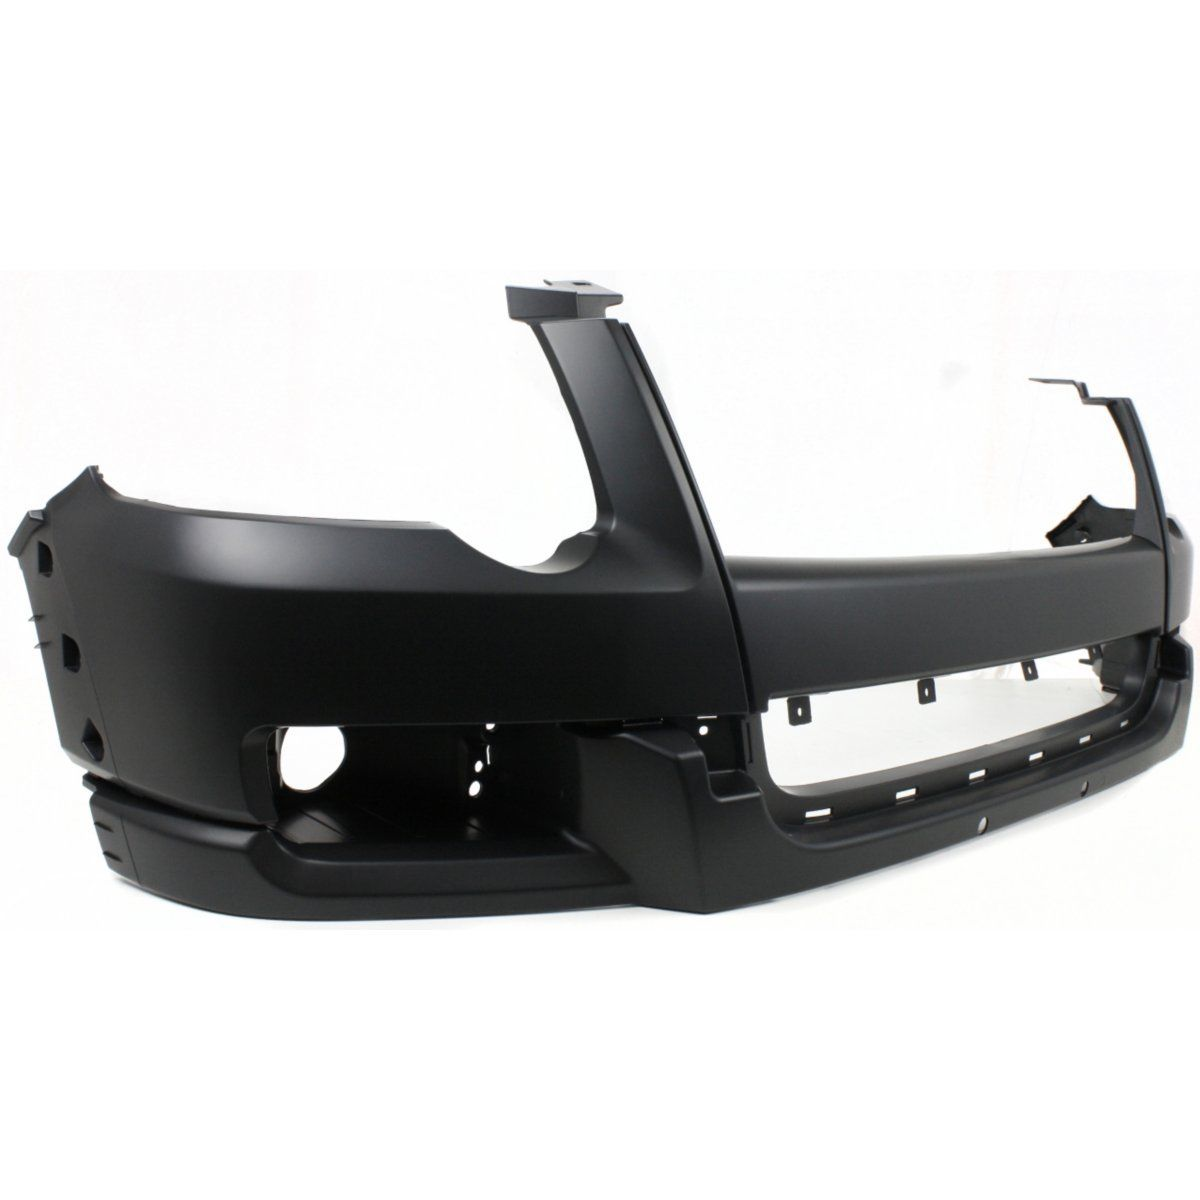 CLEAN AMERICAN USED FRONT BUMPER